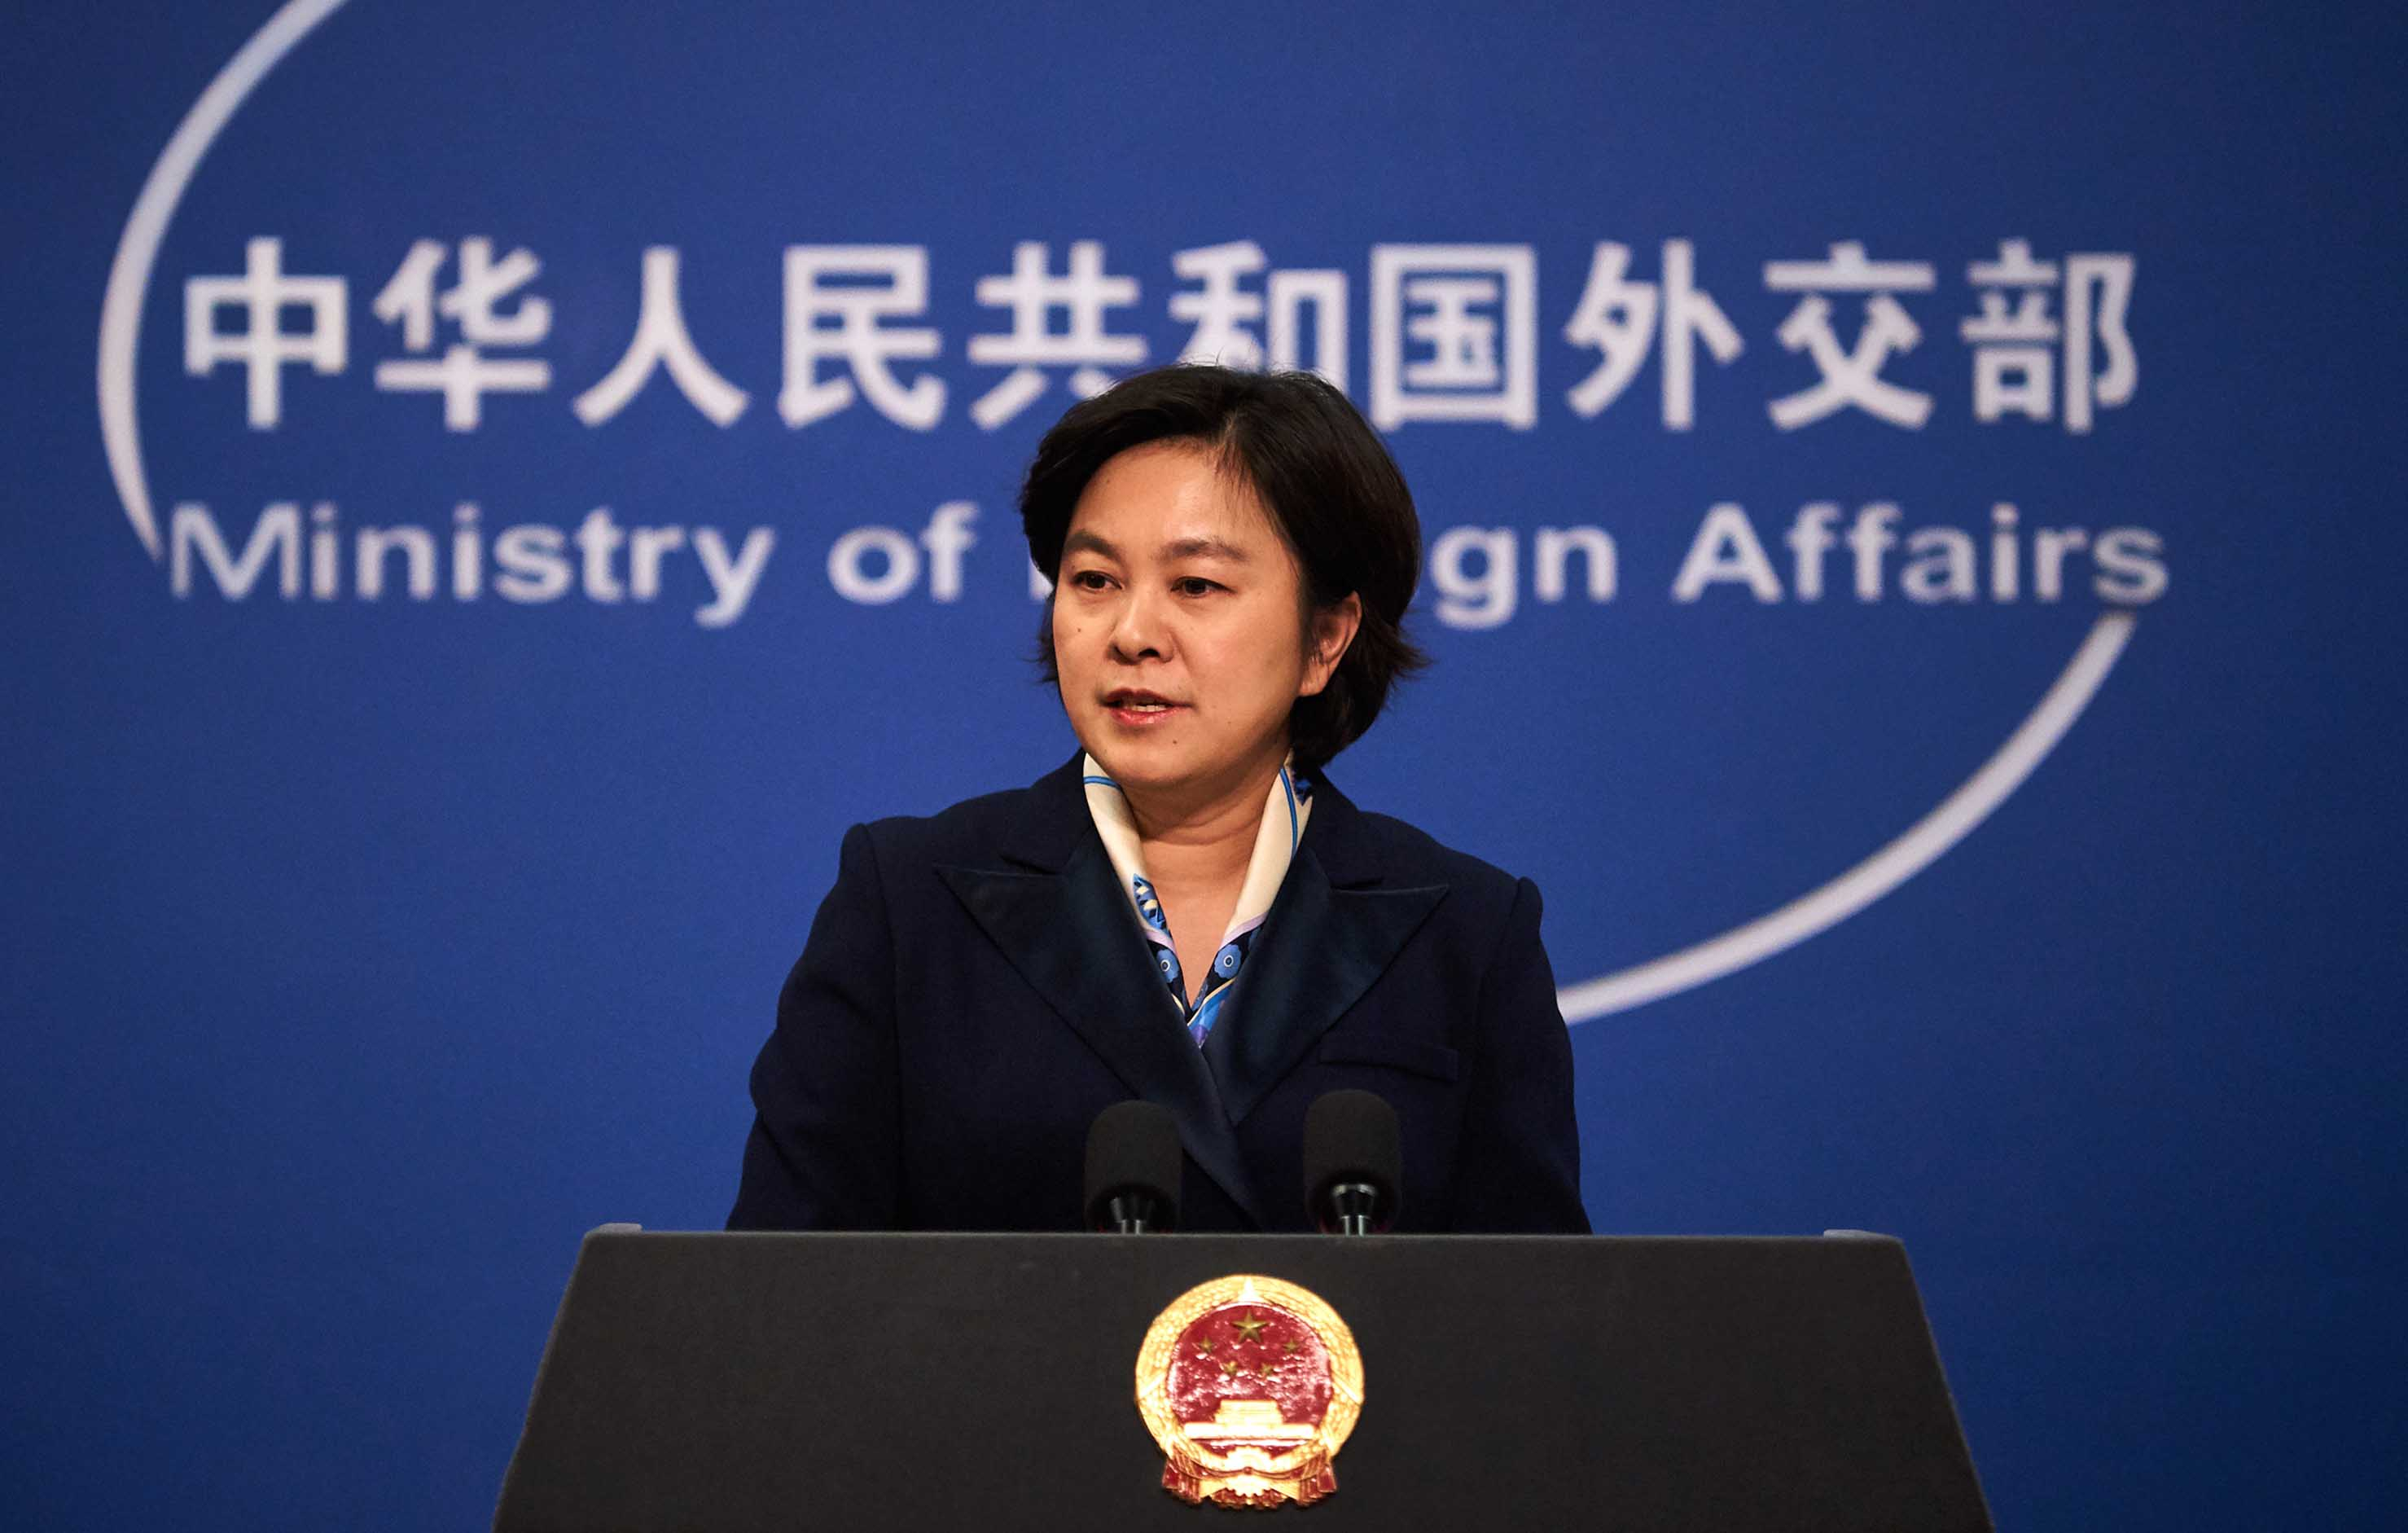 Chinese Foreign Ministry spokesperson Hua Chunying is pictured at a weekly press briefing in Beijing, in March 2018.